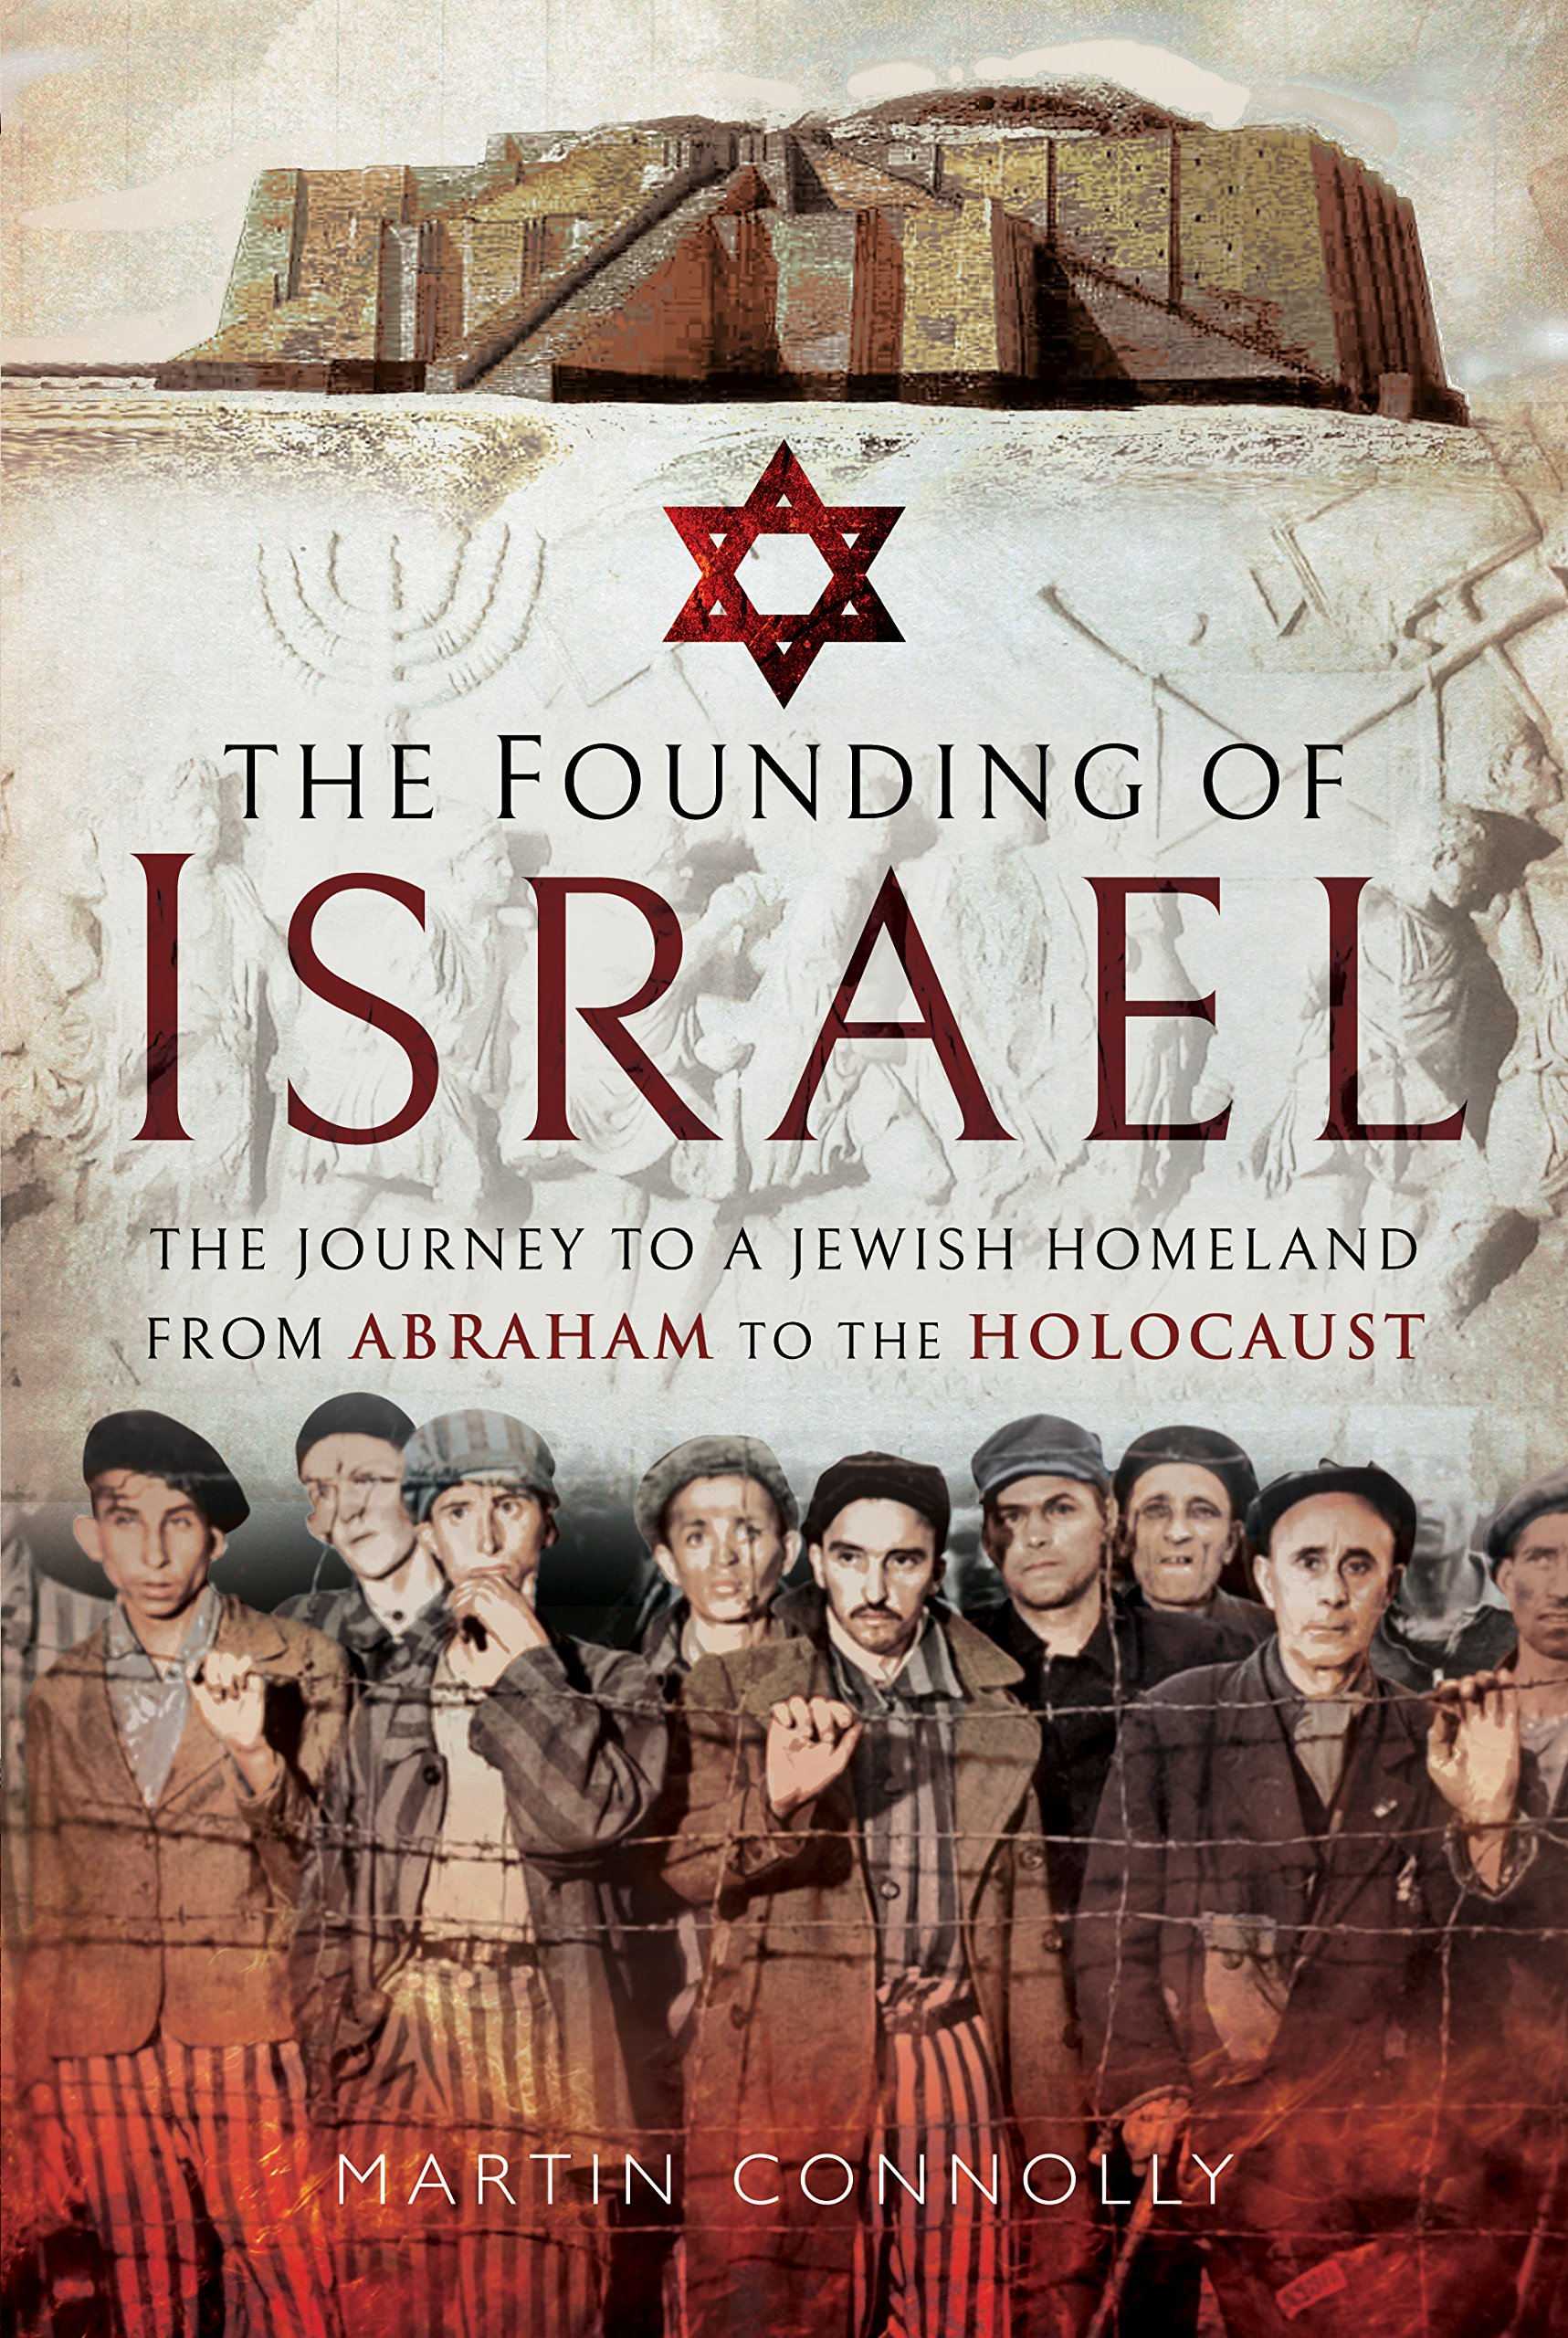 The Founding of Israel: The Journey to a Jewish Homeland from Abraham to the Holocaust pdf